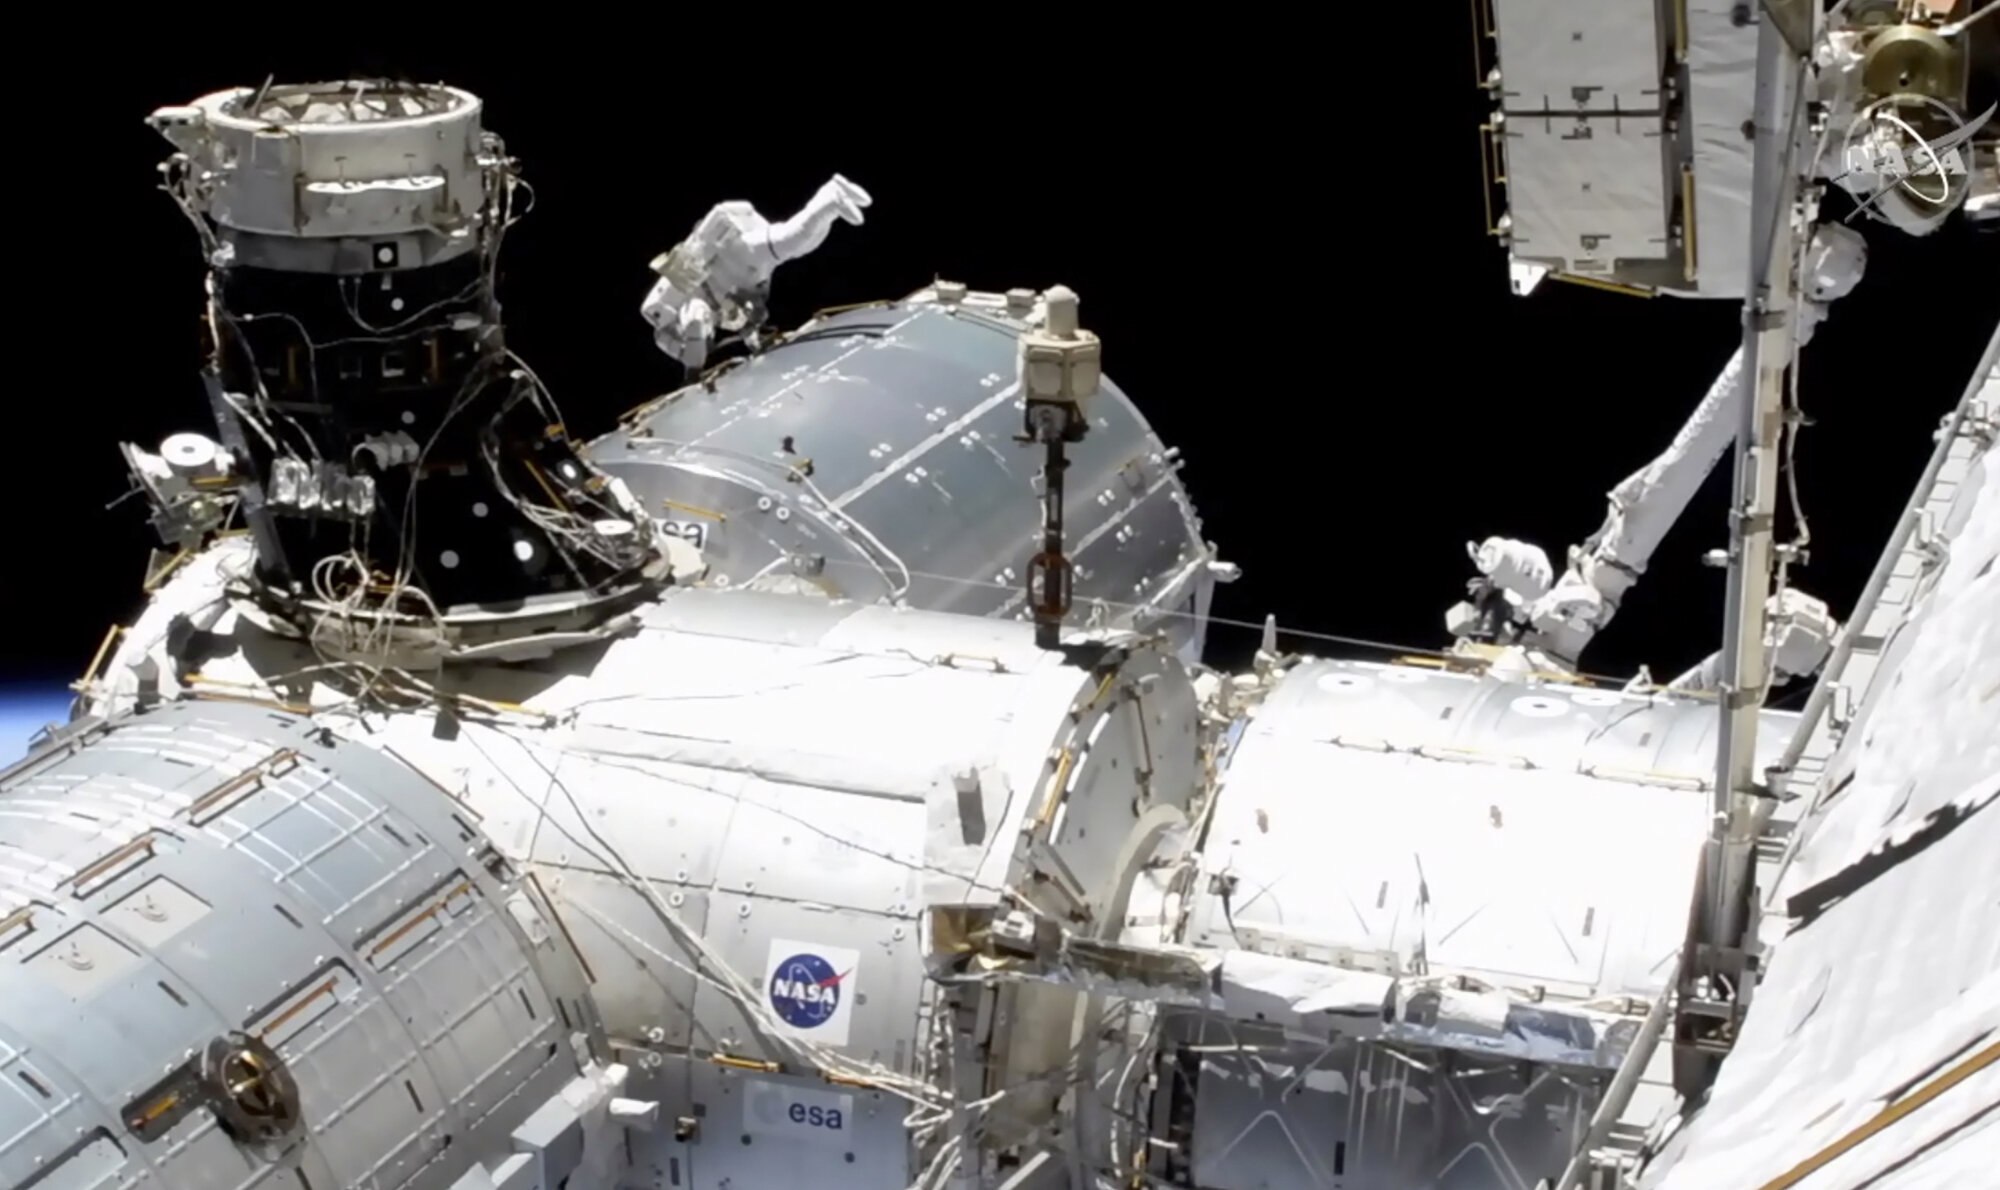 Spacewalking astronauts improve station's European lab